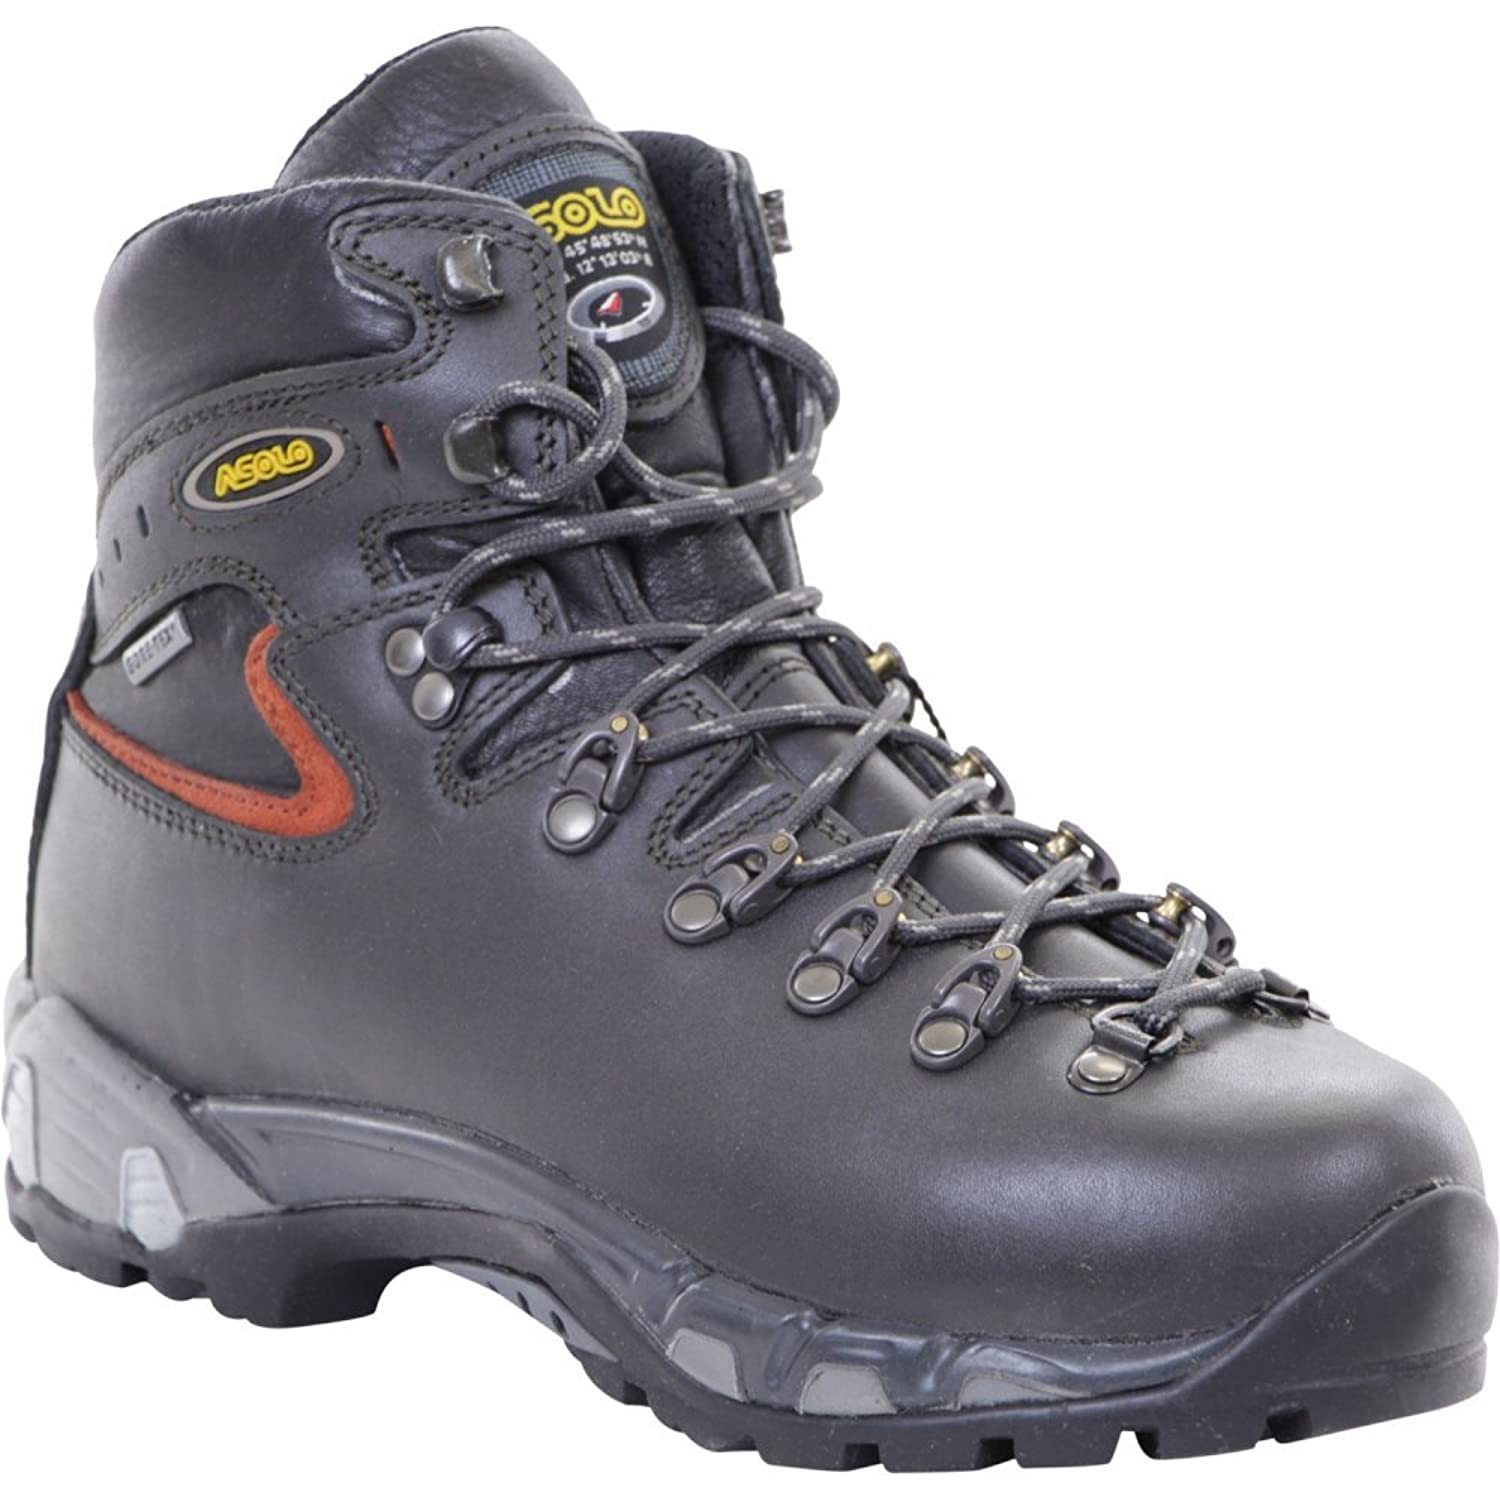 0M2201_450 Asolo Women's Power Matic 200 Hiking Boots - Graphite